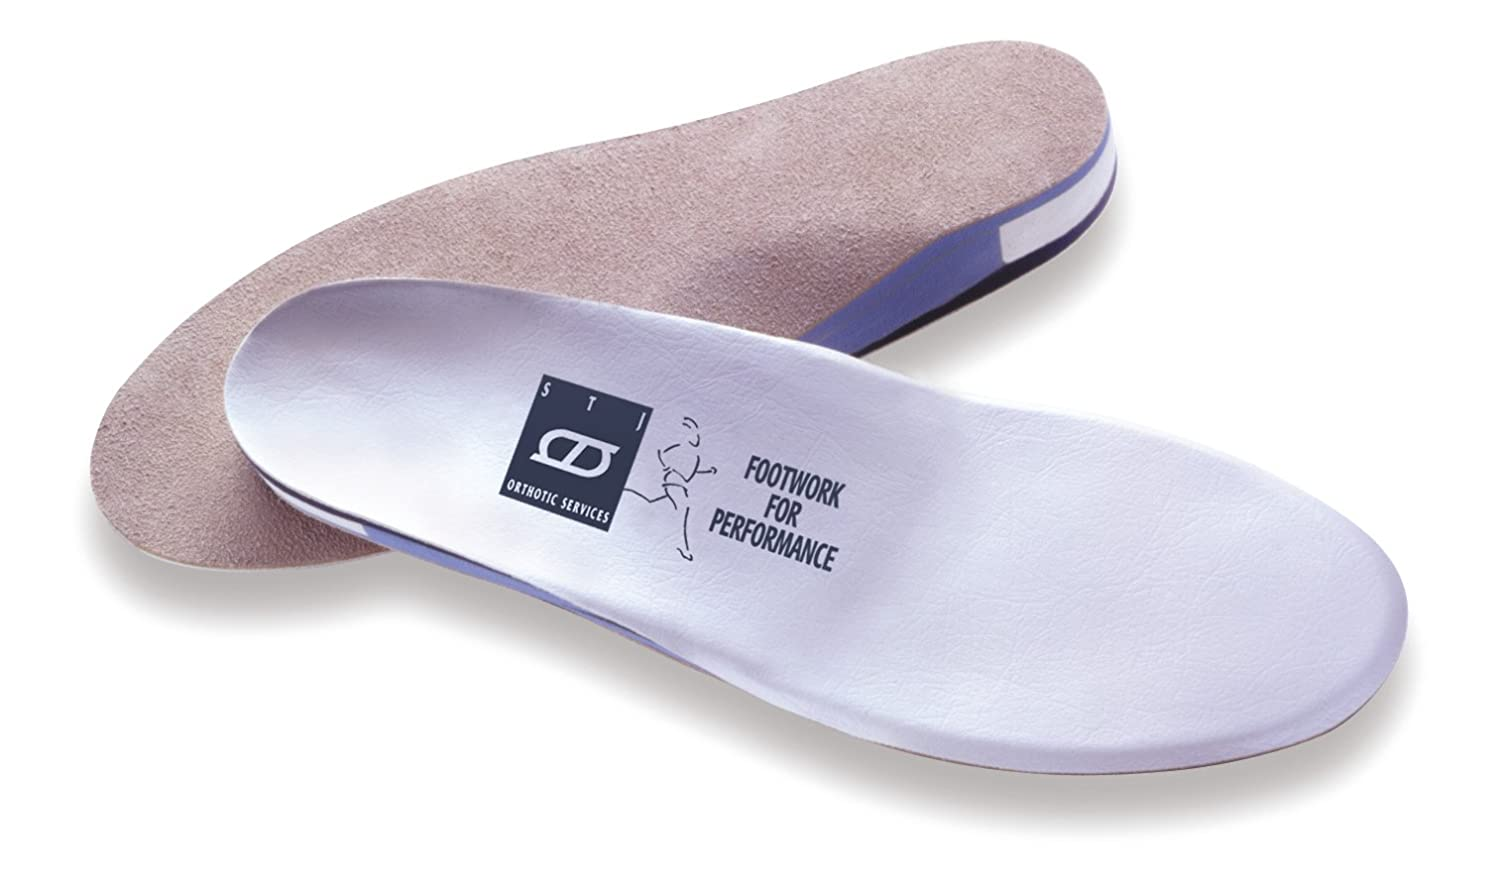 Arch Support Insoles Orthotics Custom Molded Prescription by Harvard Trained Doctor - Style: Basketball